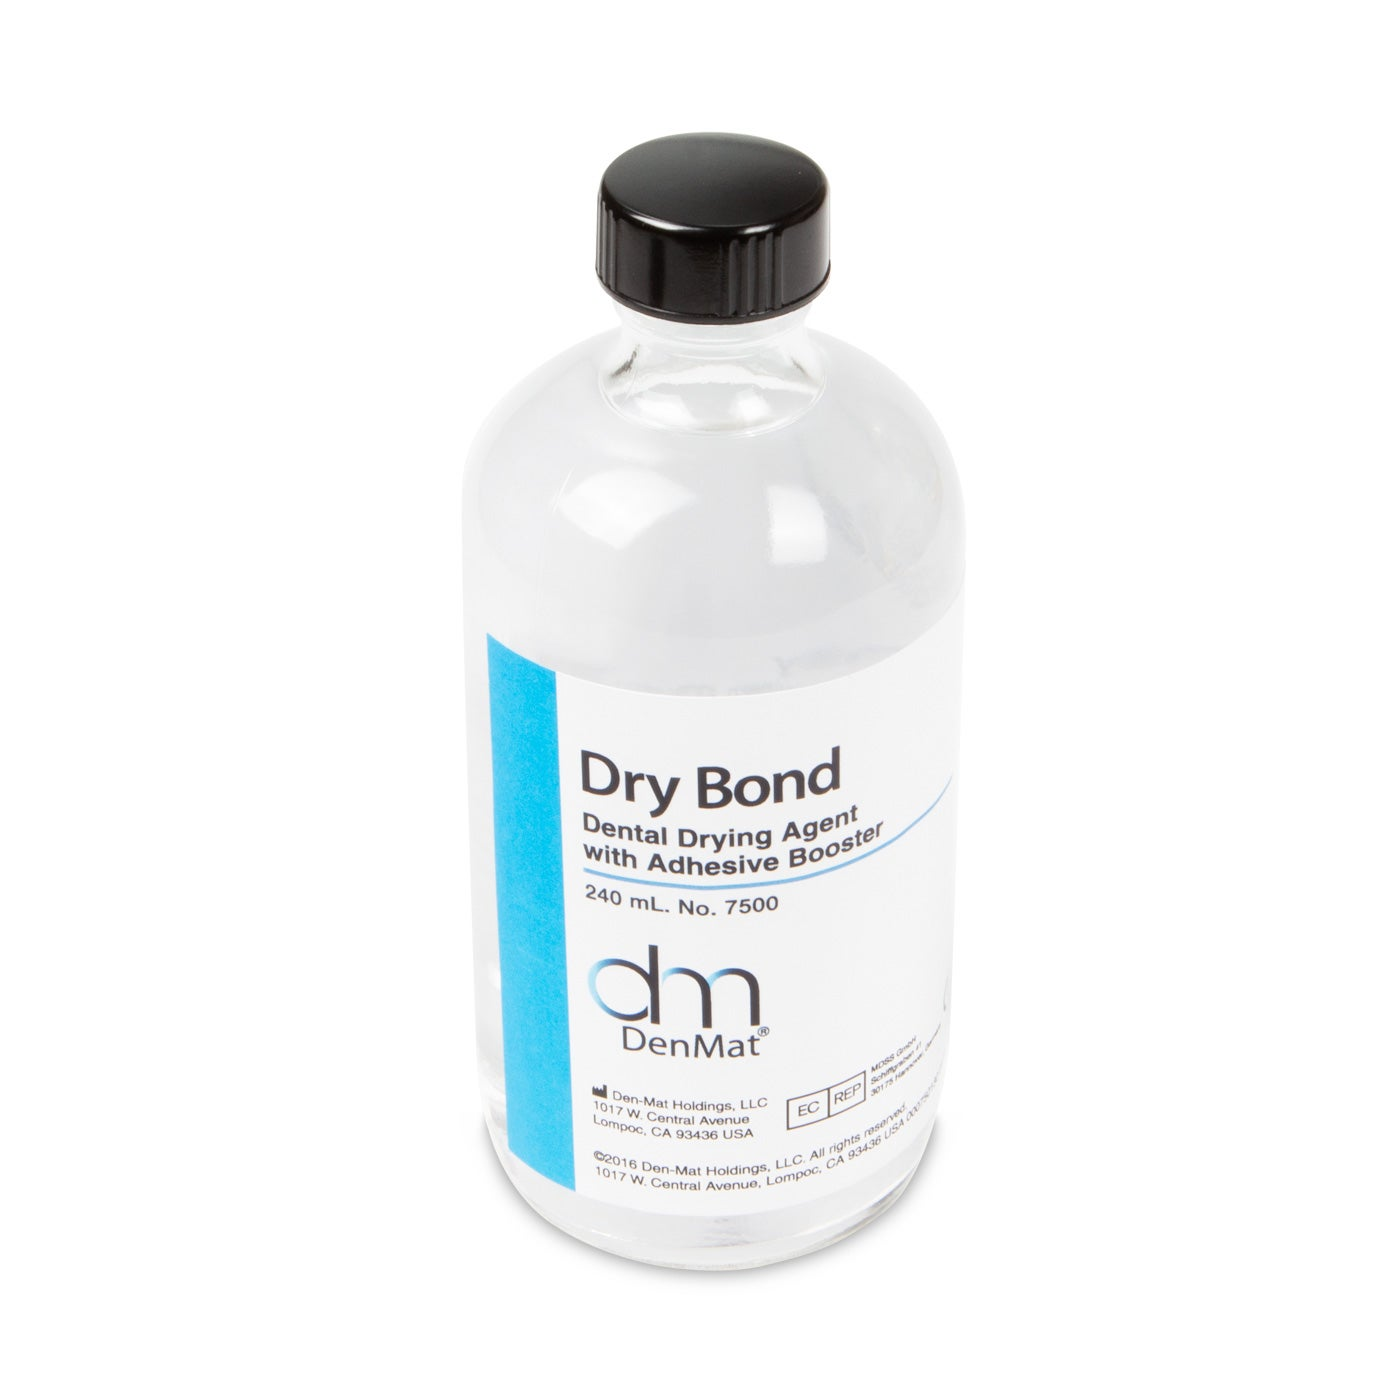 Dental Drying Agent - Dry Bond 240mL